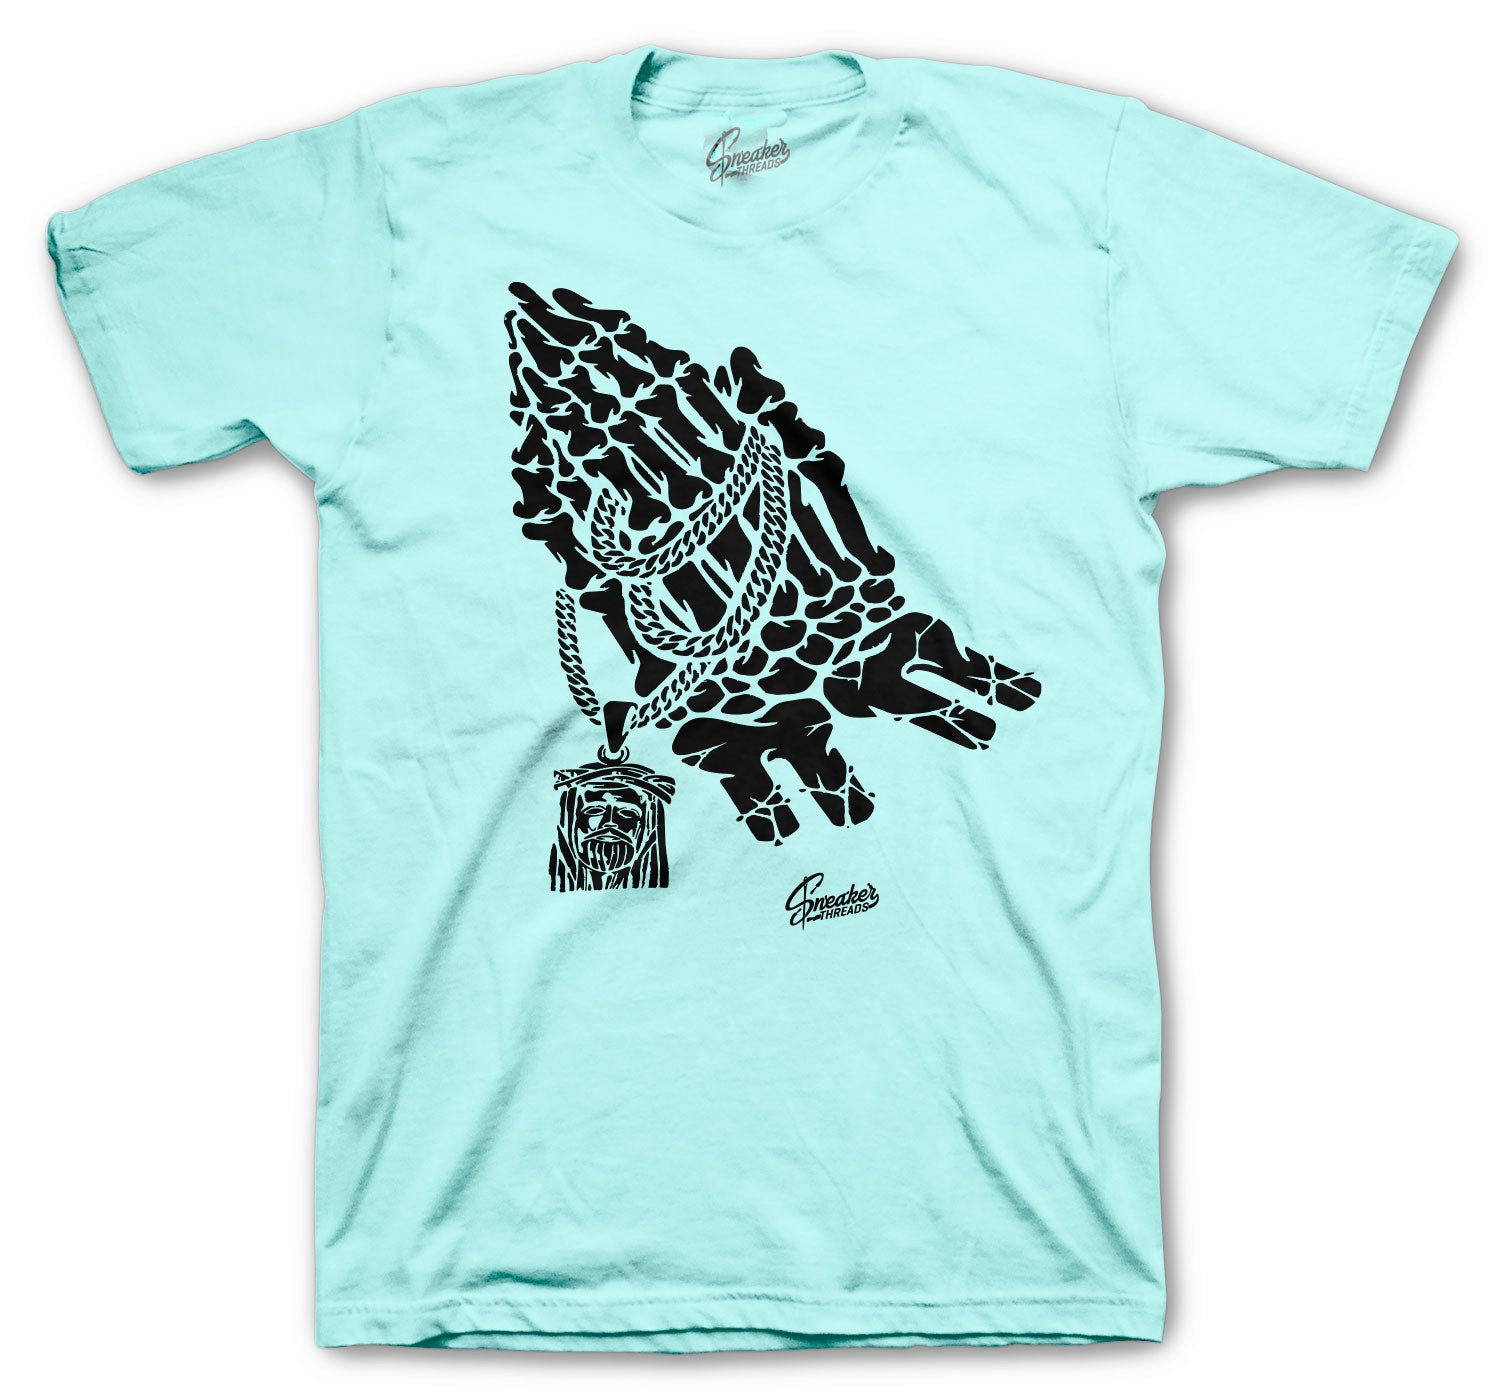 Jordan 12 Easter Shirt - Praying Hands - Green